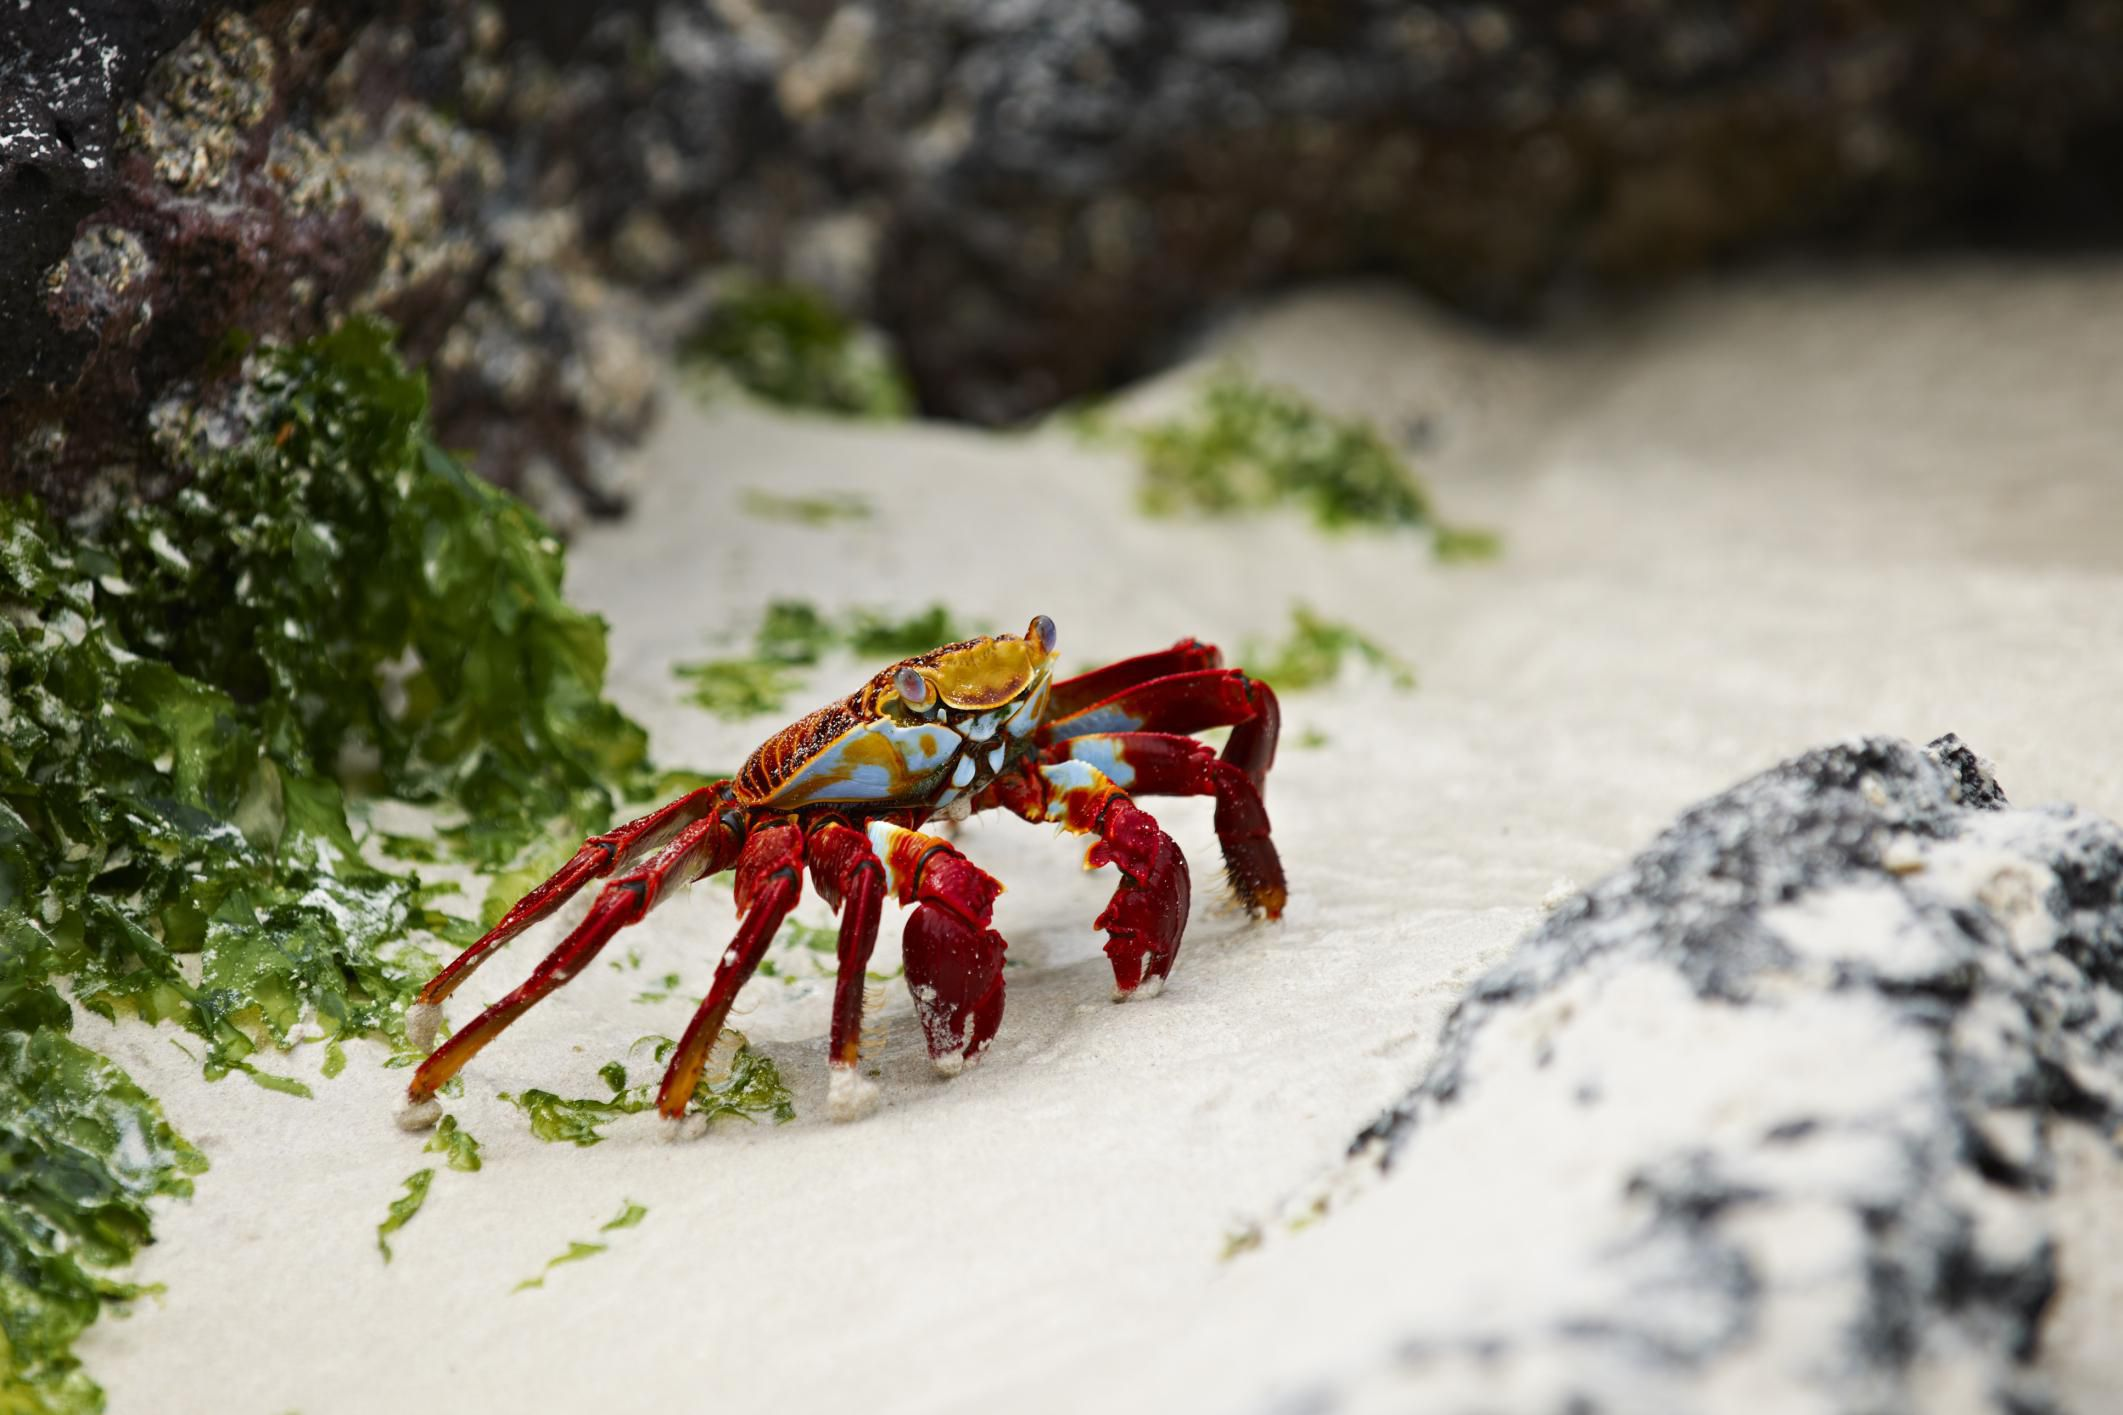 Crustacean Characteristics And Other Basic Facts